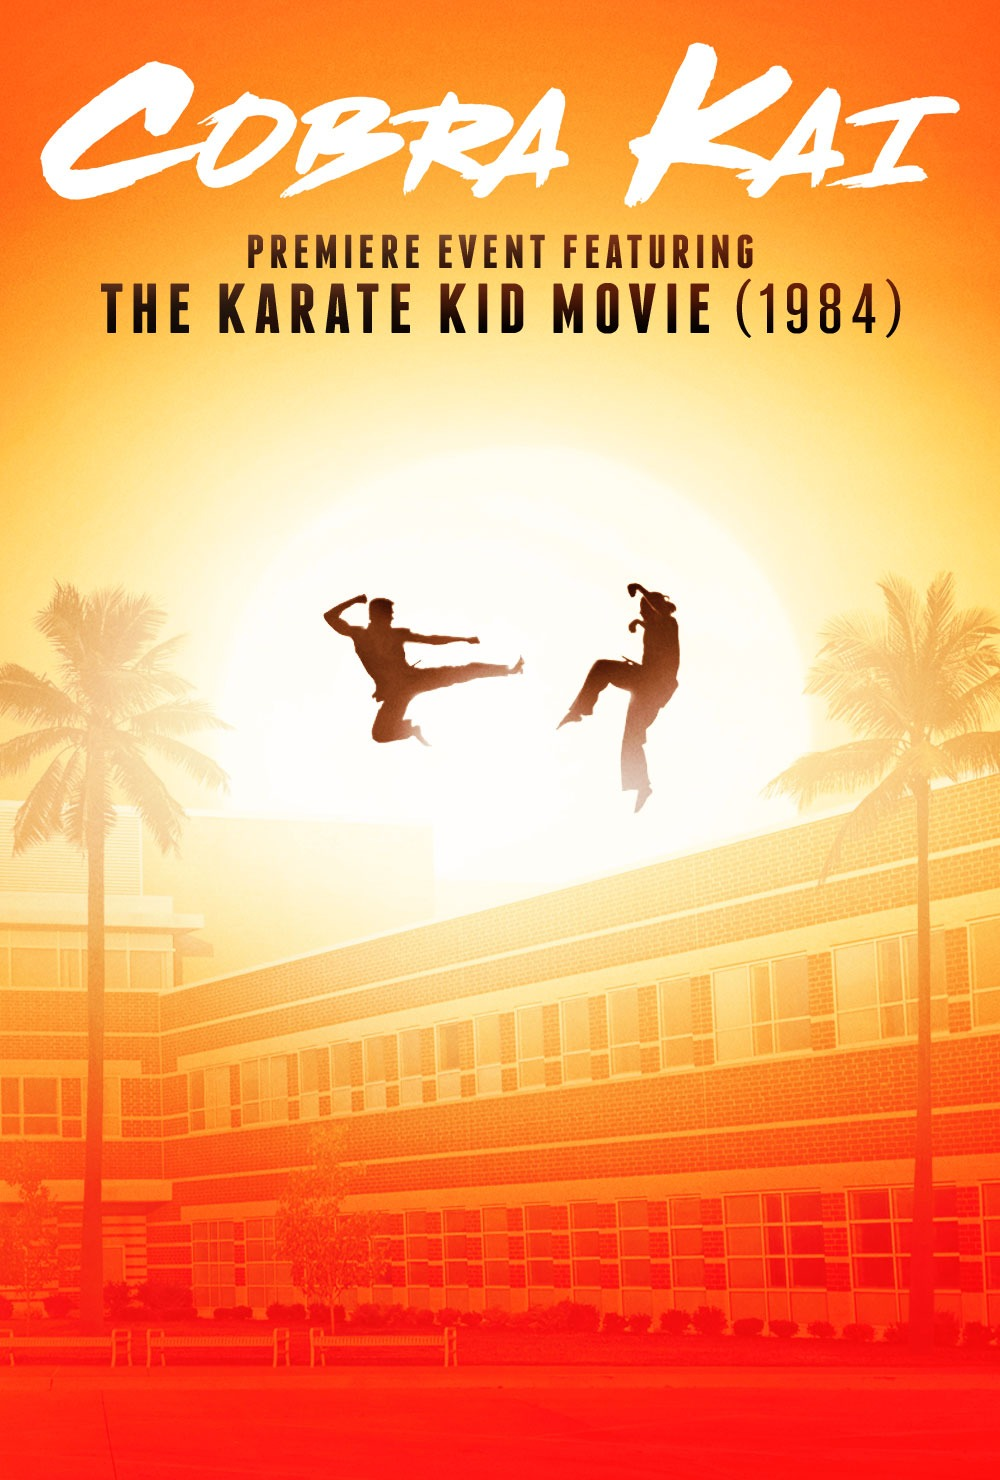 Cobra Kai Premiere feat. Karate Kid